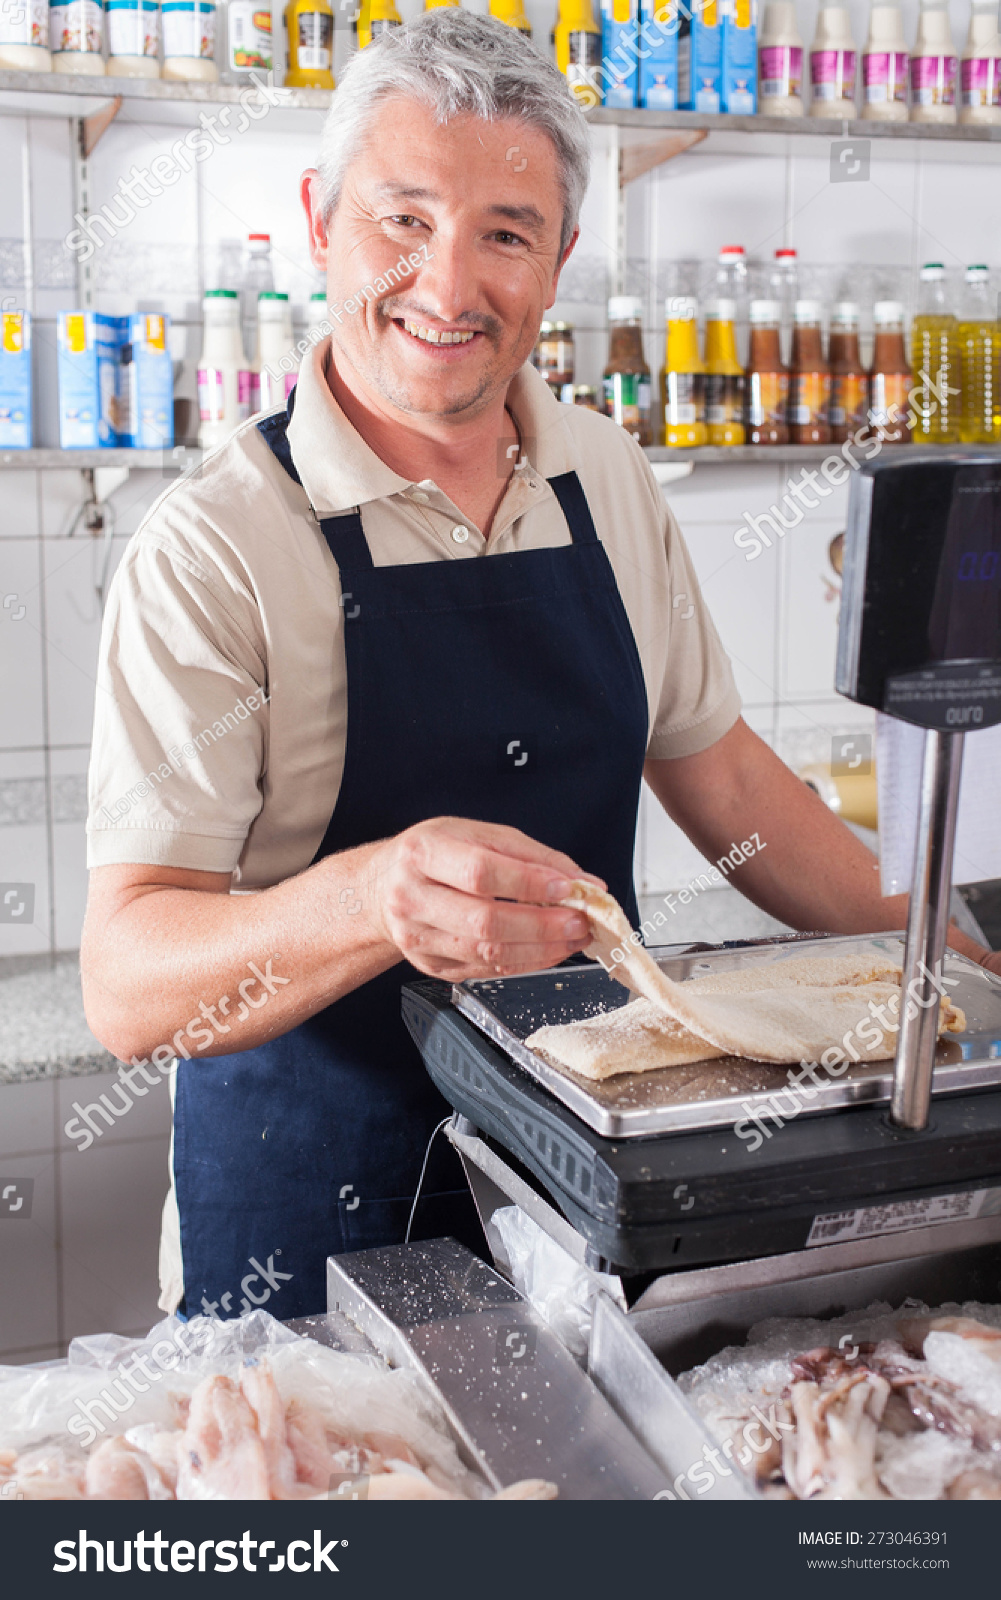 Man weighing piece fish stock photo 273046391 shutterstock for Piece of fish